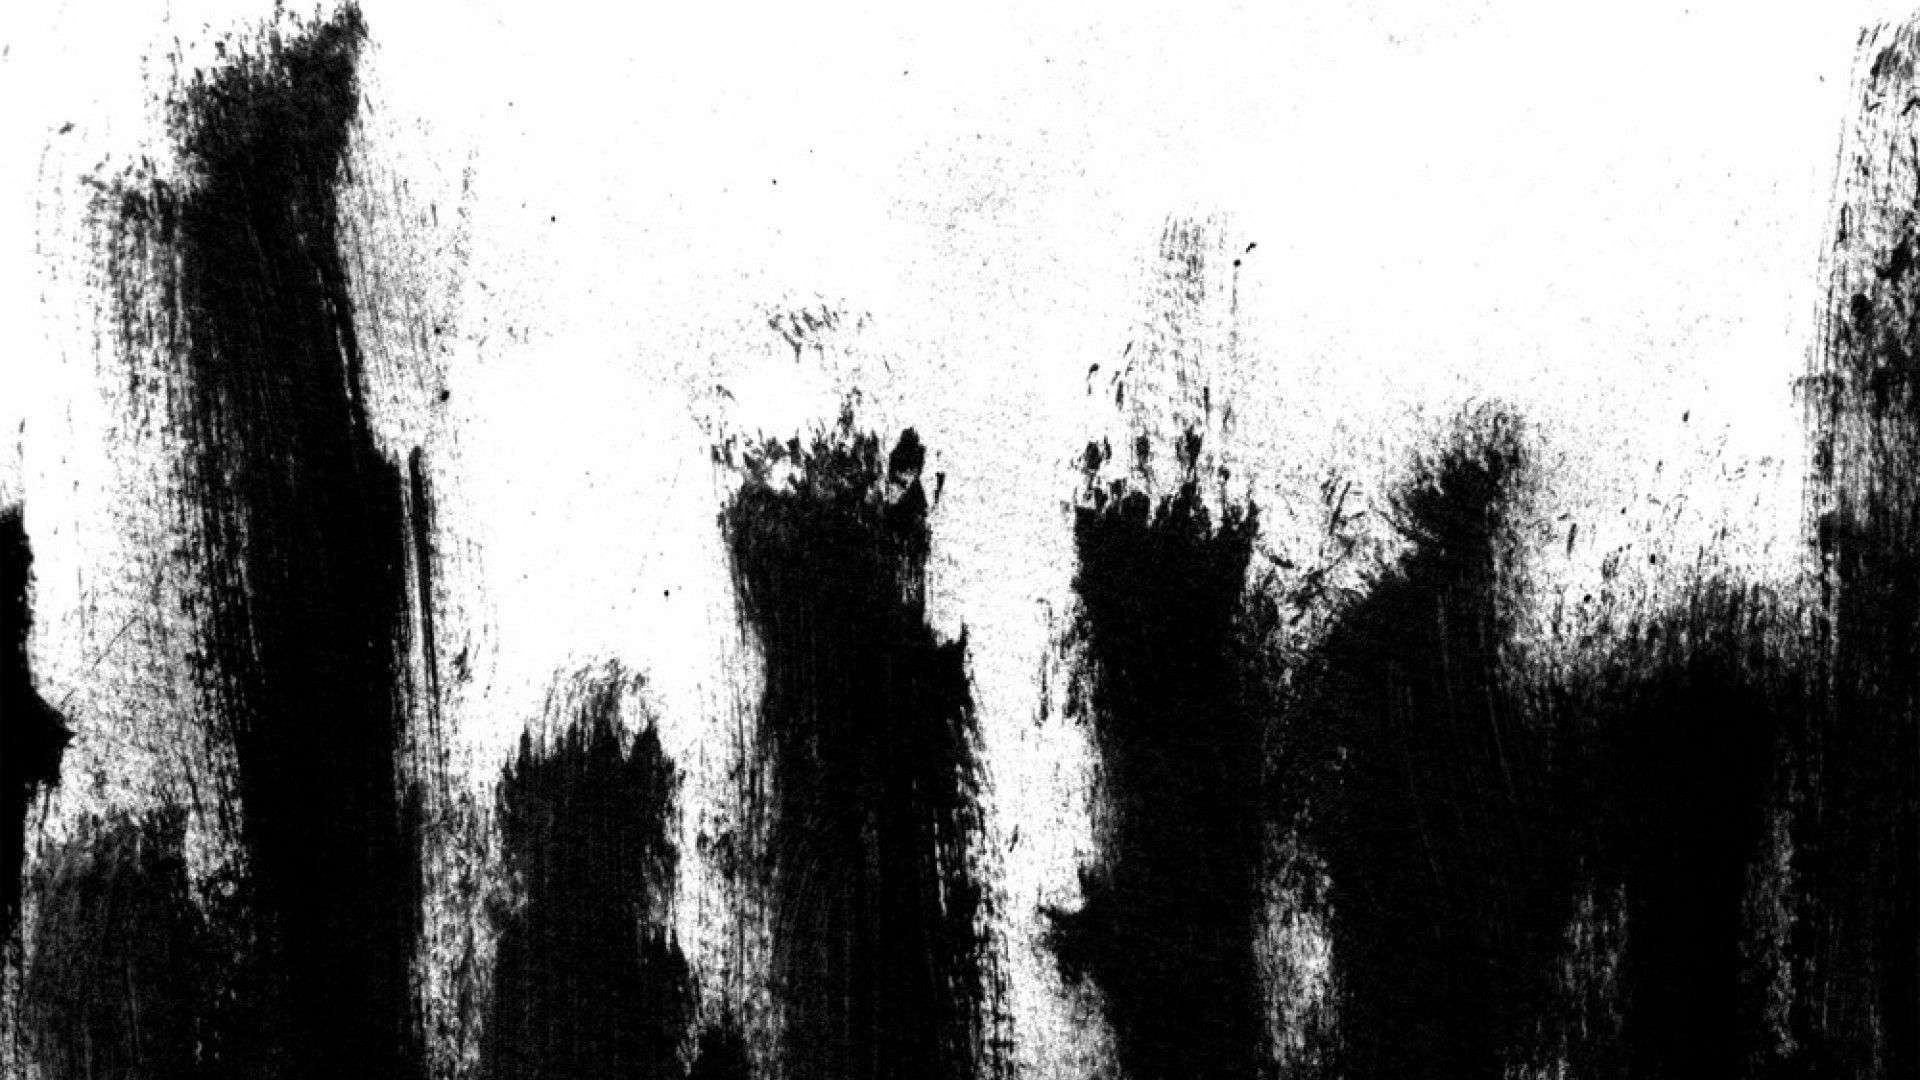 Of Album Covers Musicians Cover Art Anberlin Wallpaper Hd Wallpapers 1920x1080